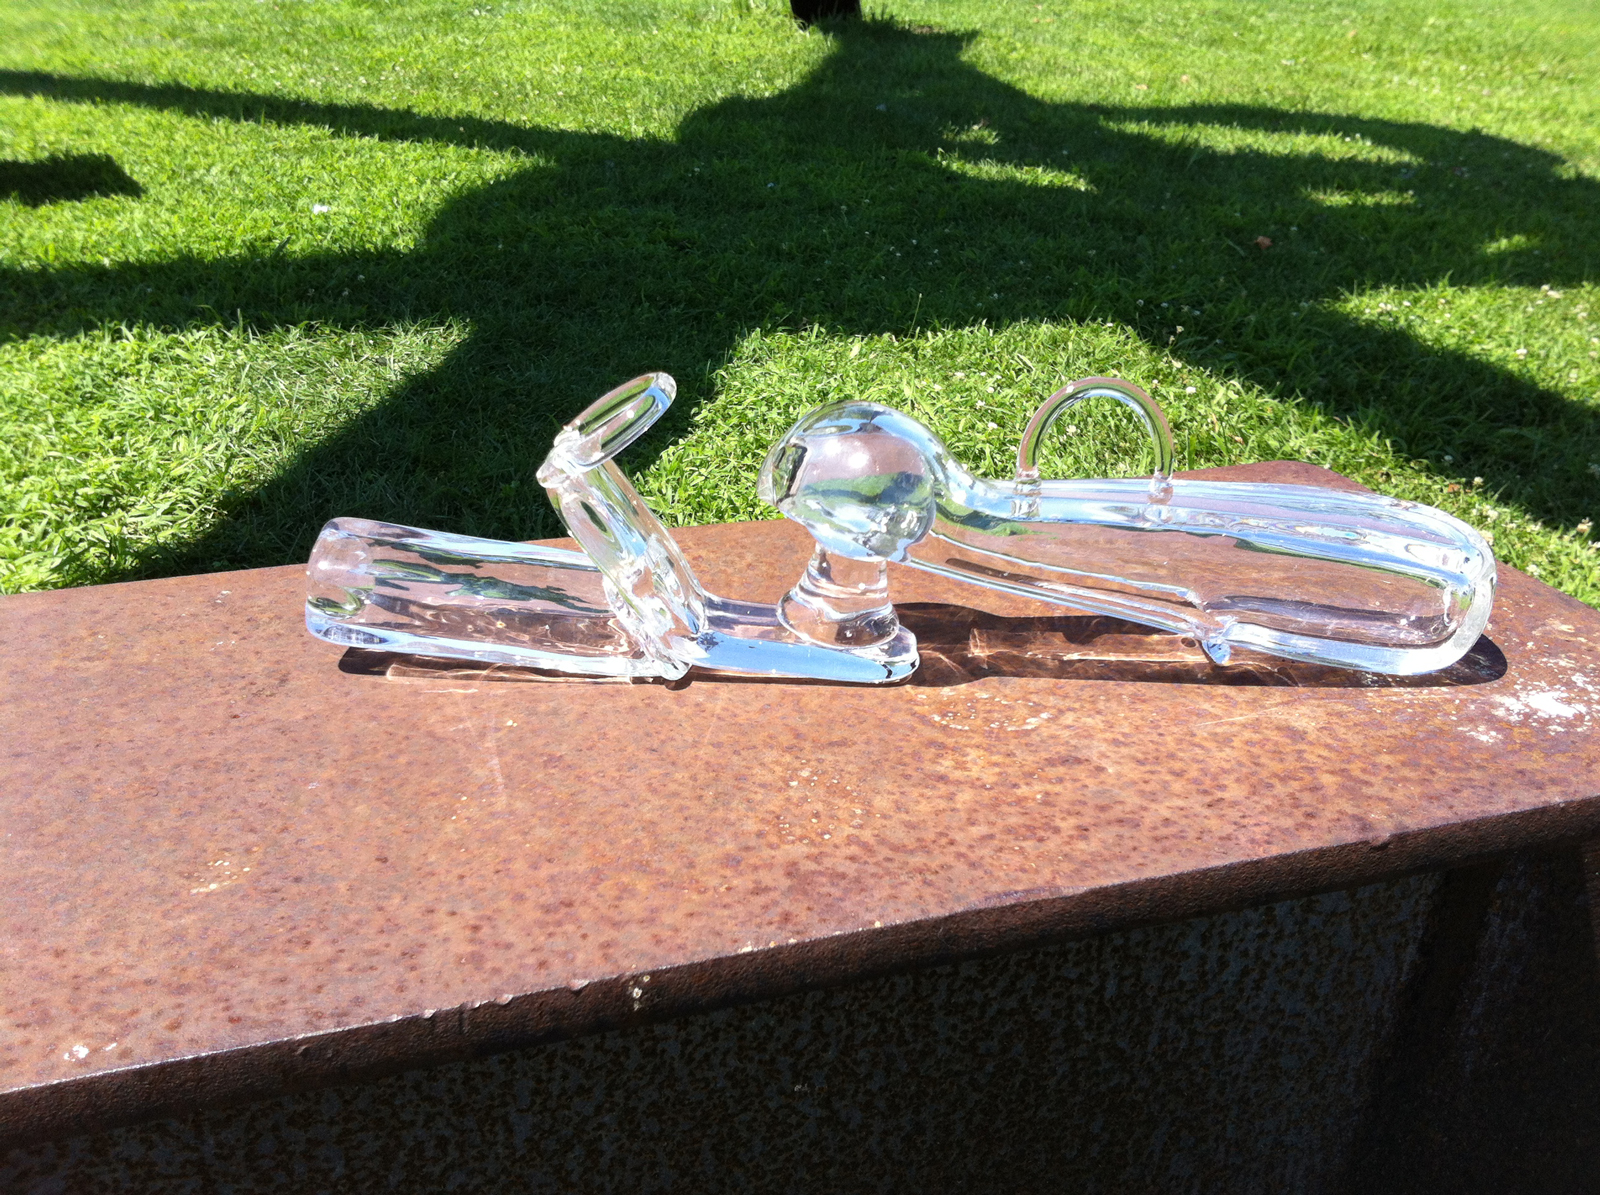 Truck hitch prototype by Designers Keetra Dean Dixon and JK Keller at GlassLab on Governors Island